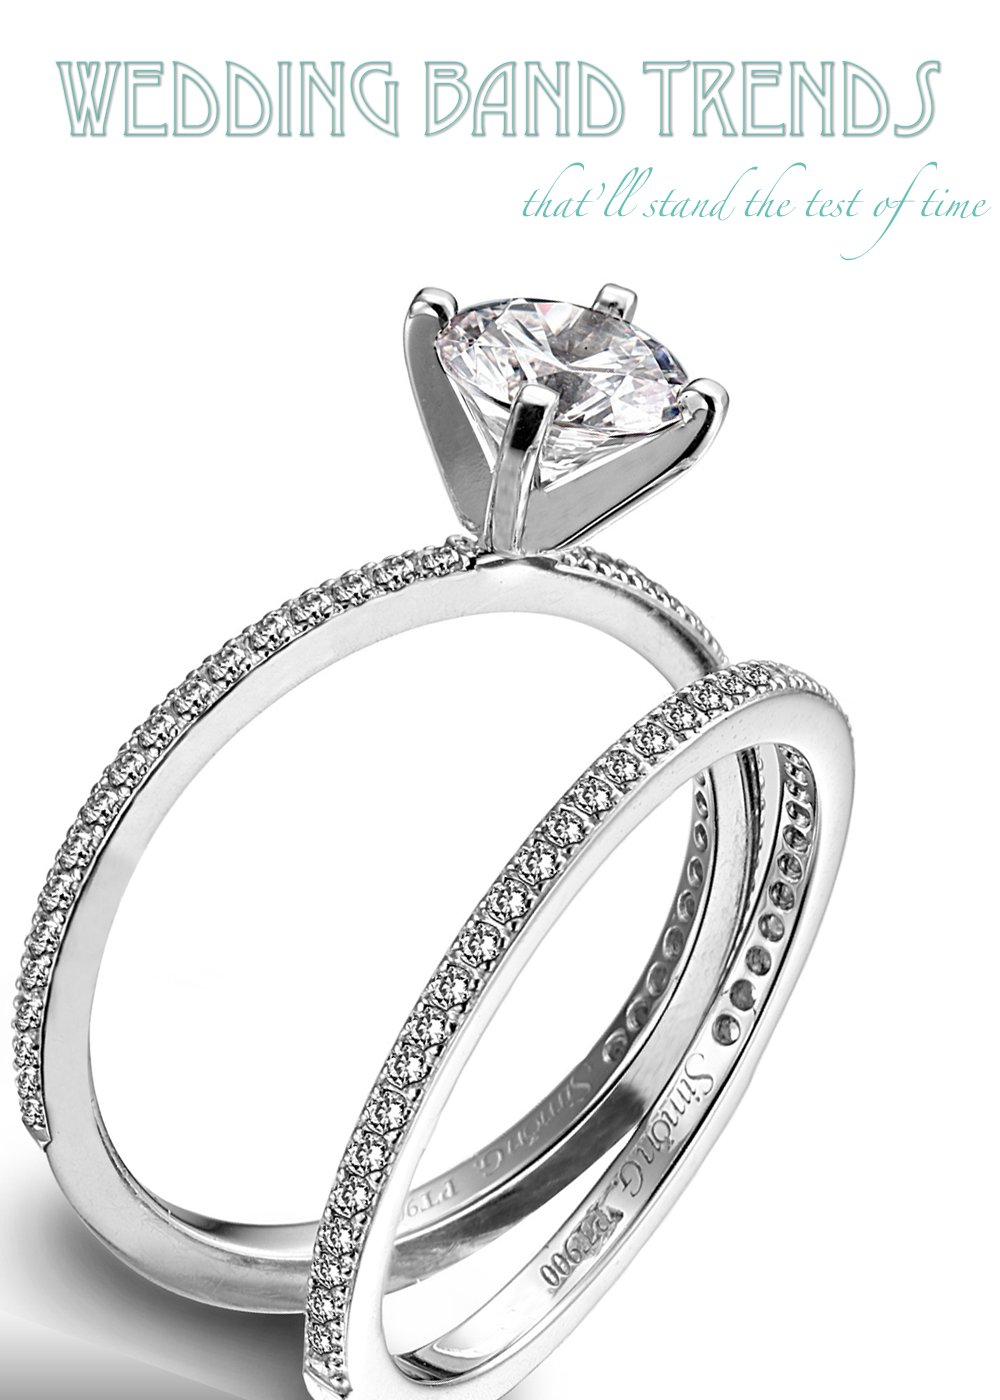 wedding rings and band wedding ring and band Wedding rings and band Top Three Wedding Trends For Platinum Wedding Bands And Engagement